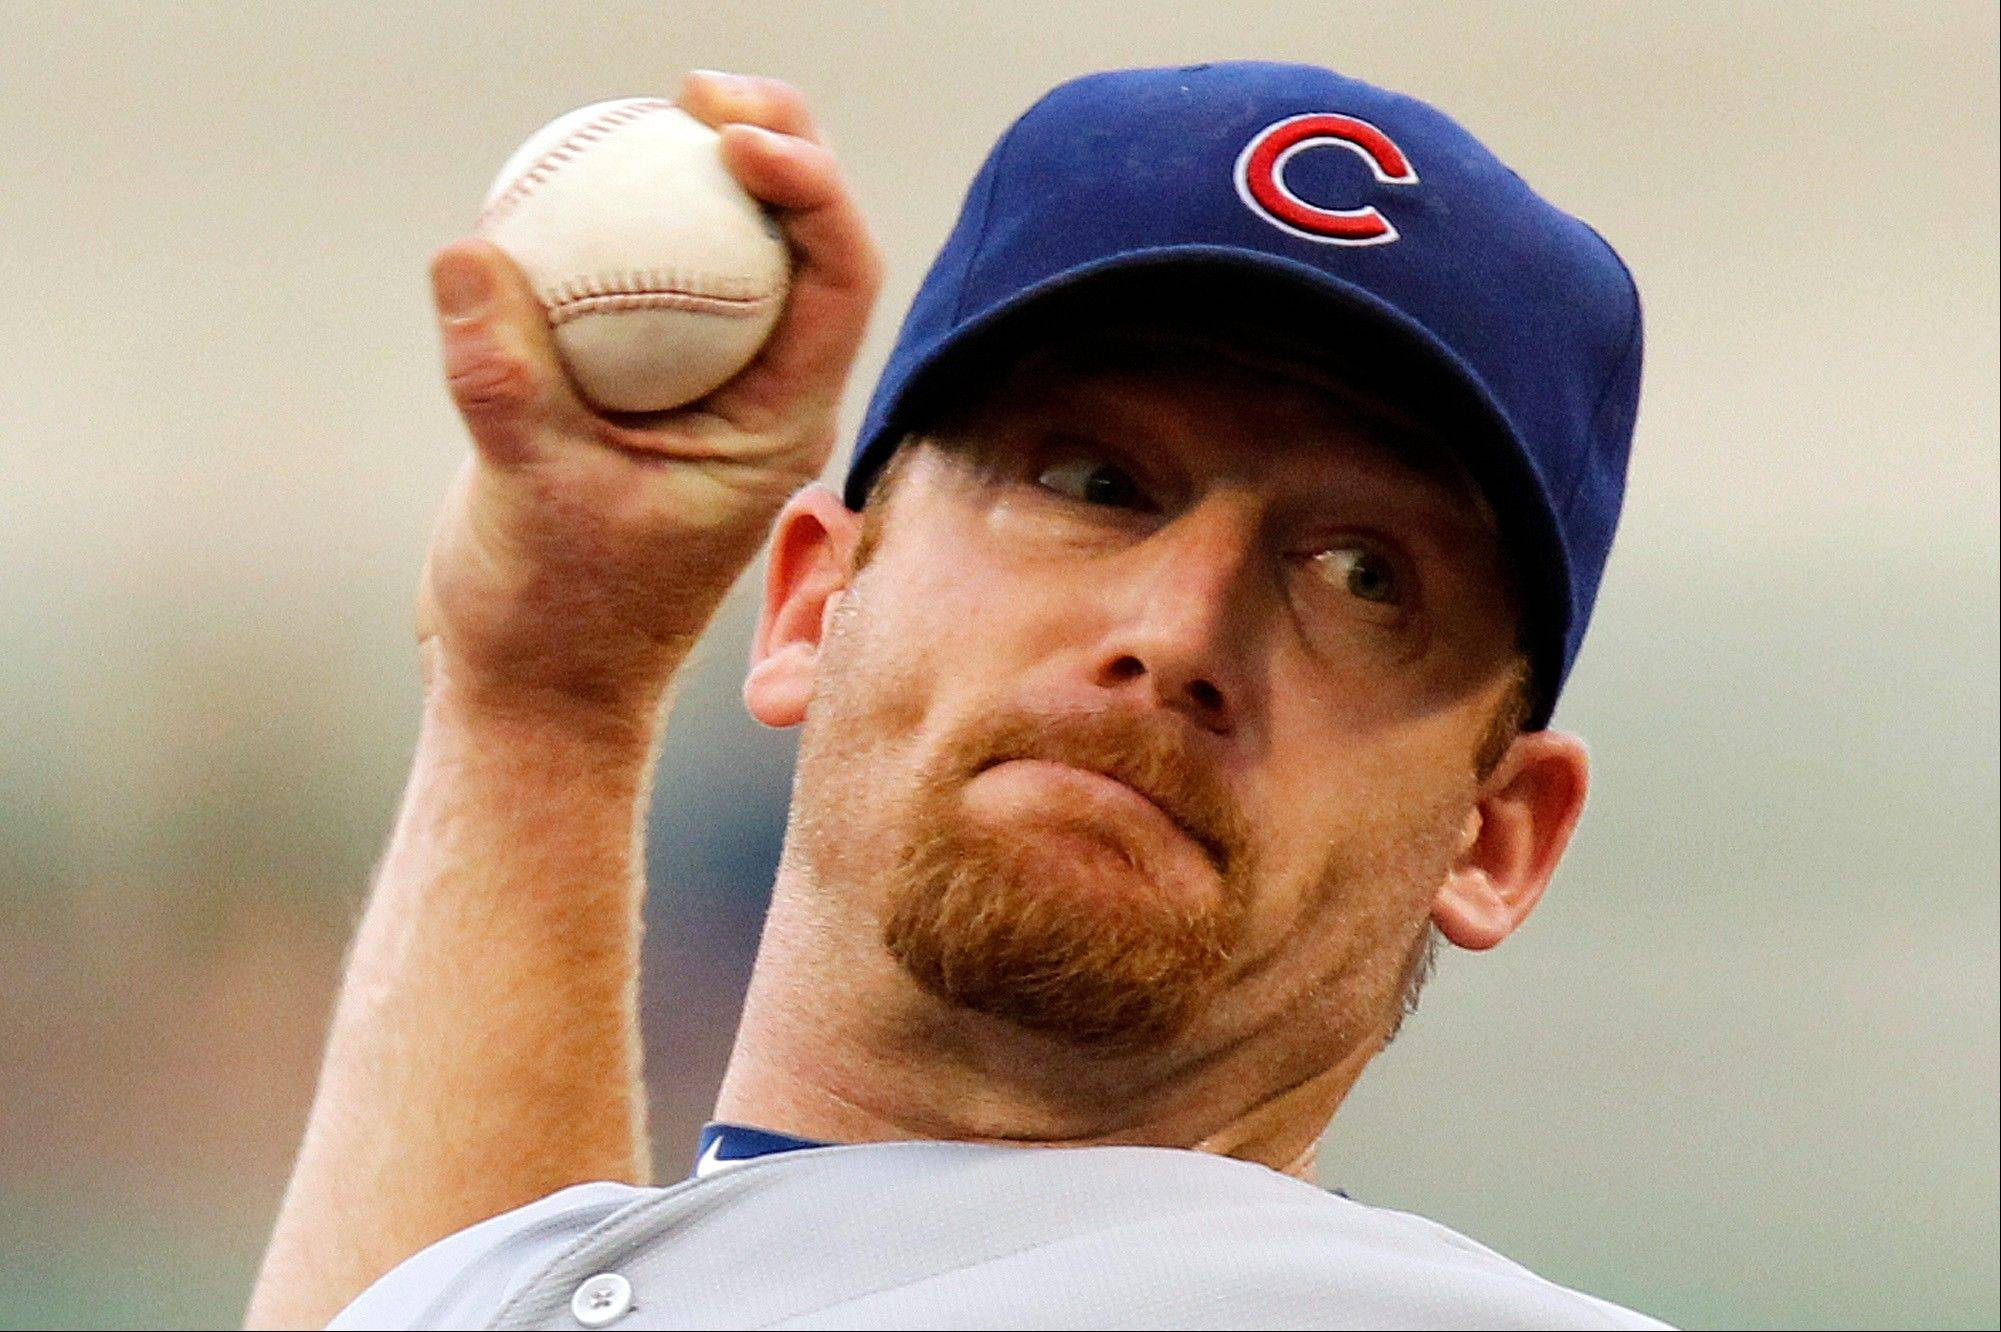 Along with his wife Jenny, Cubs pitcher Ryan Dempster has donated another $170,000 in grands to children's charities through the Dempster Family Foundation.